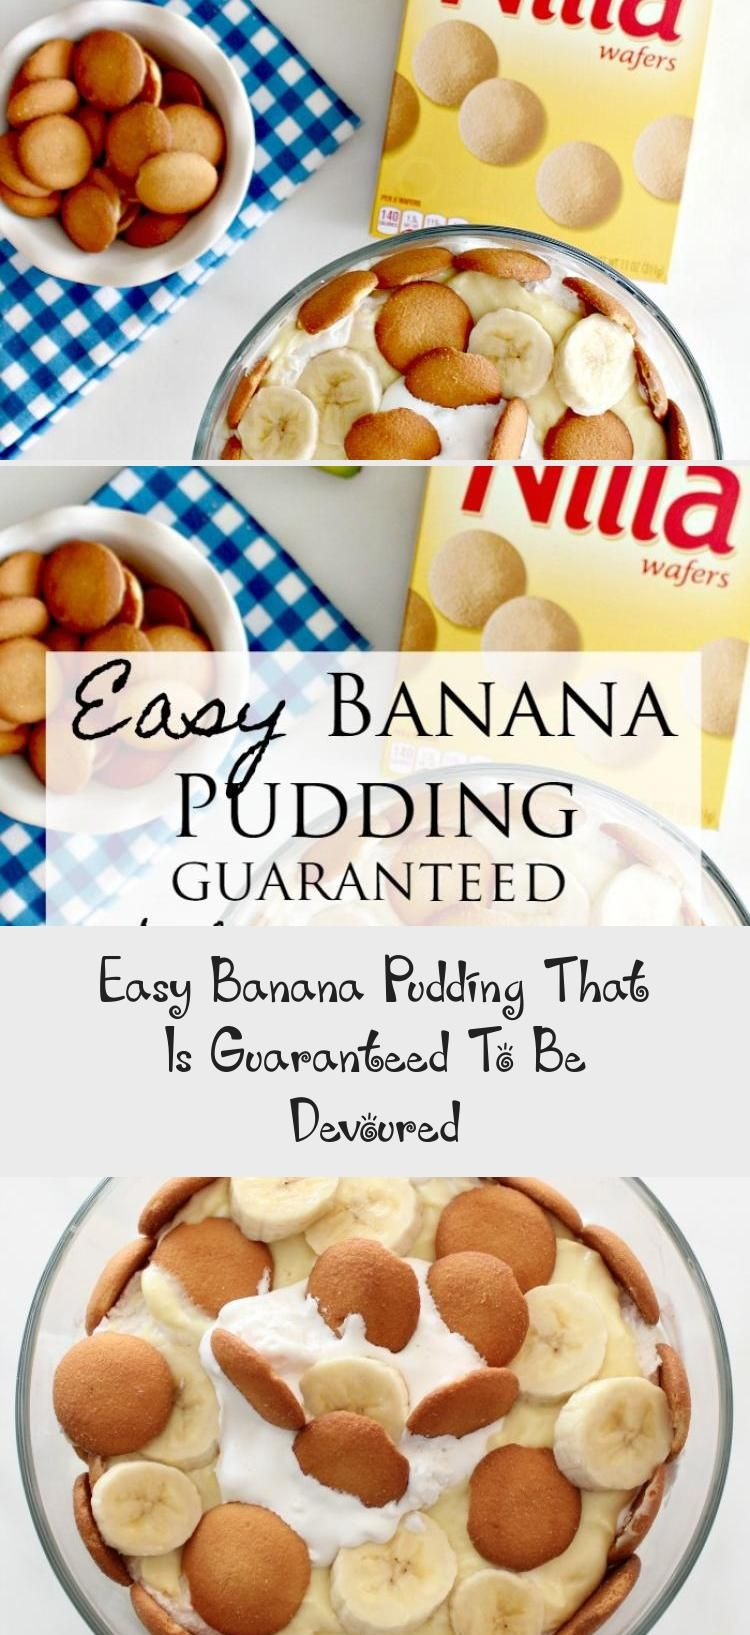 Easy Banana Pudding That Is Guaranteed To Be Devoured - Recipes For Kids #bananapudding